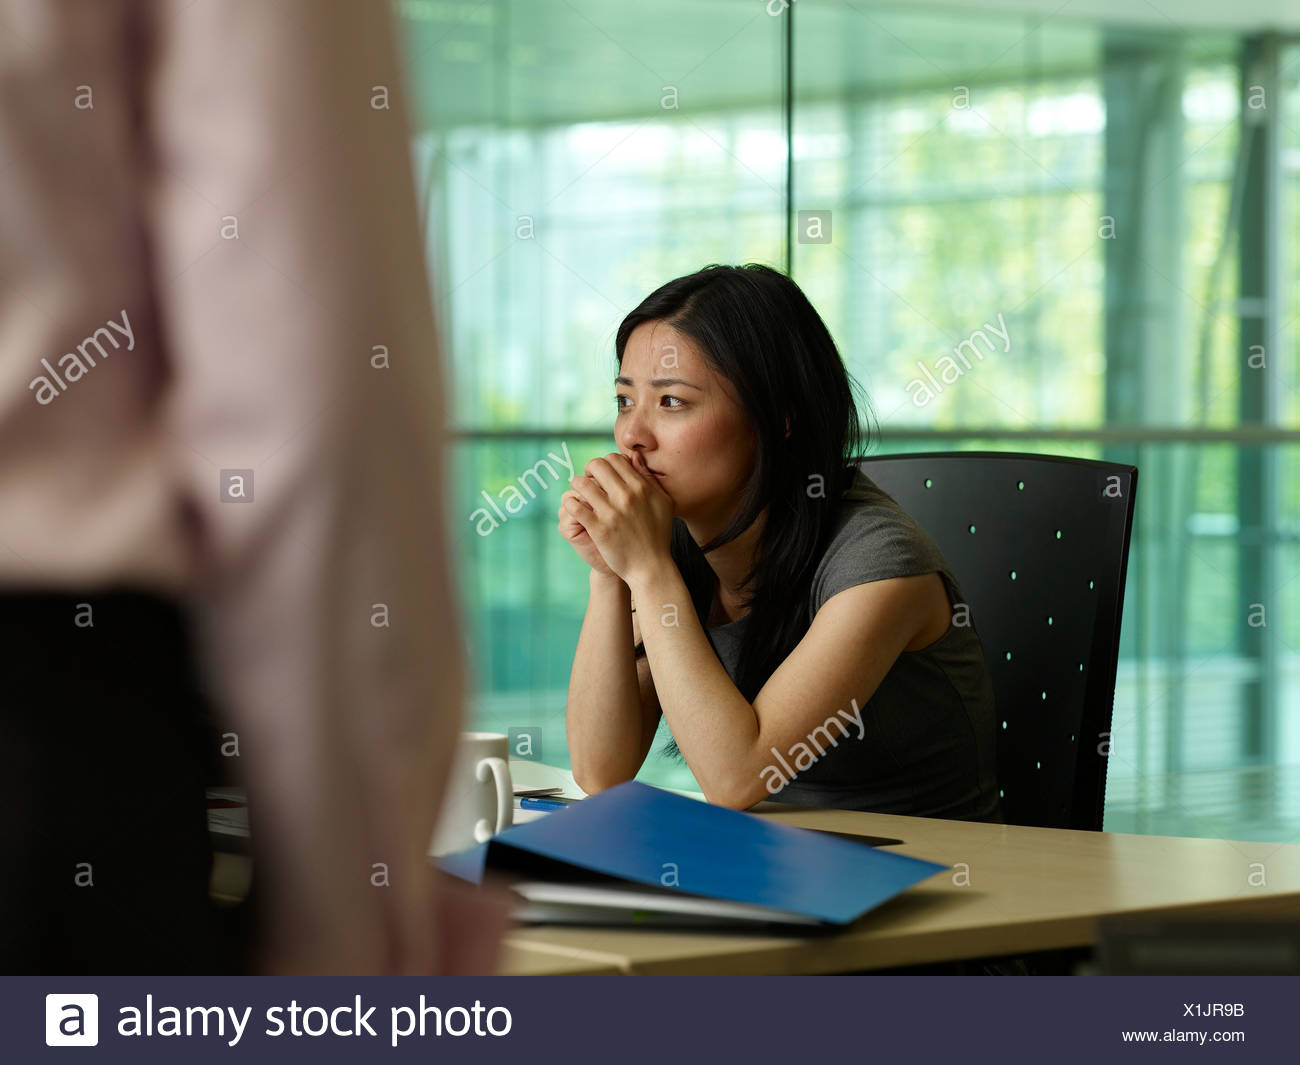 A woman looks at a crying girl Stock Photo